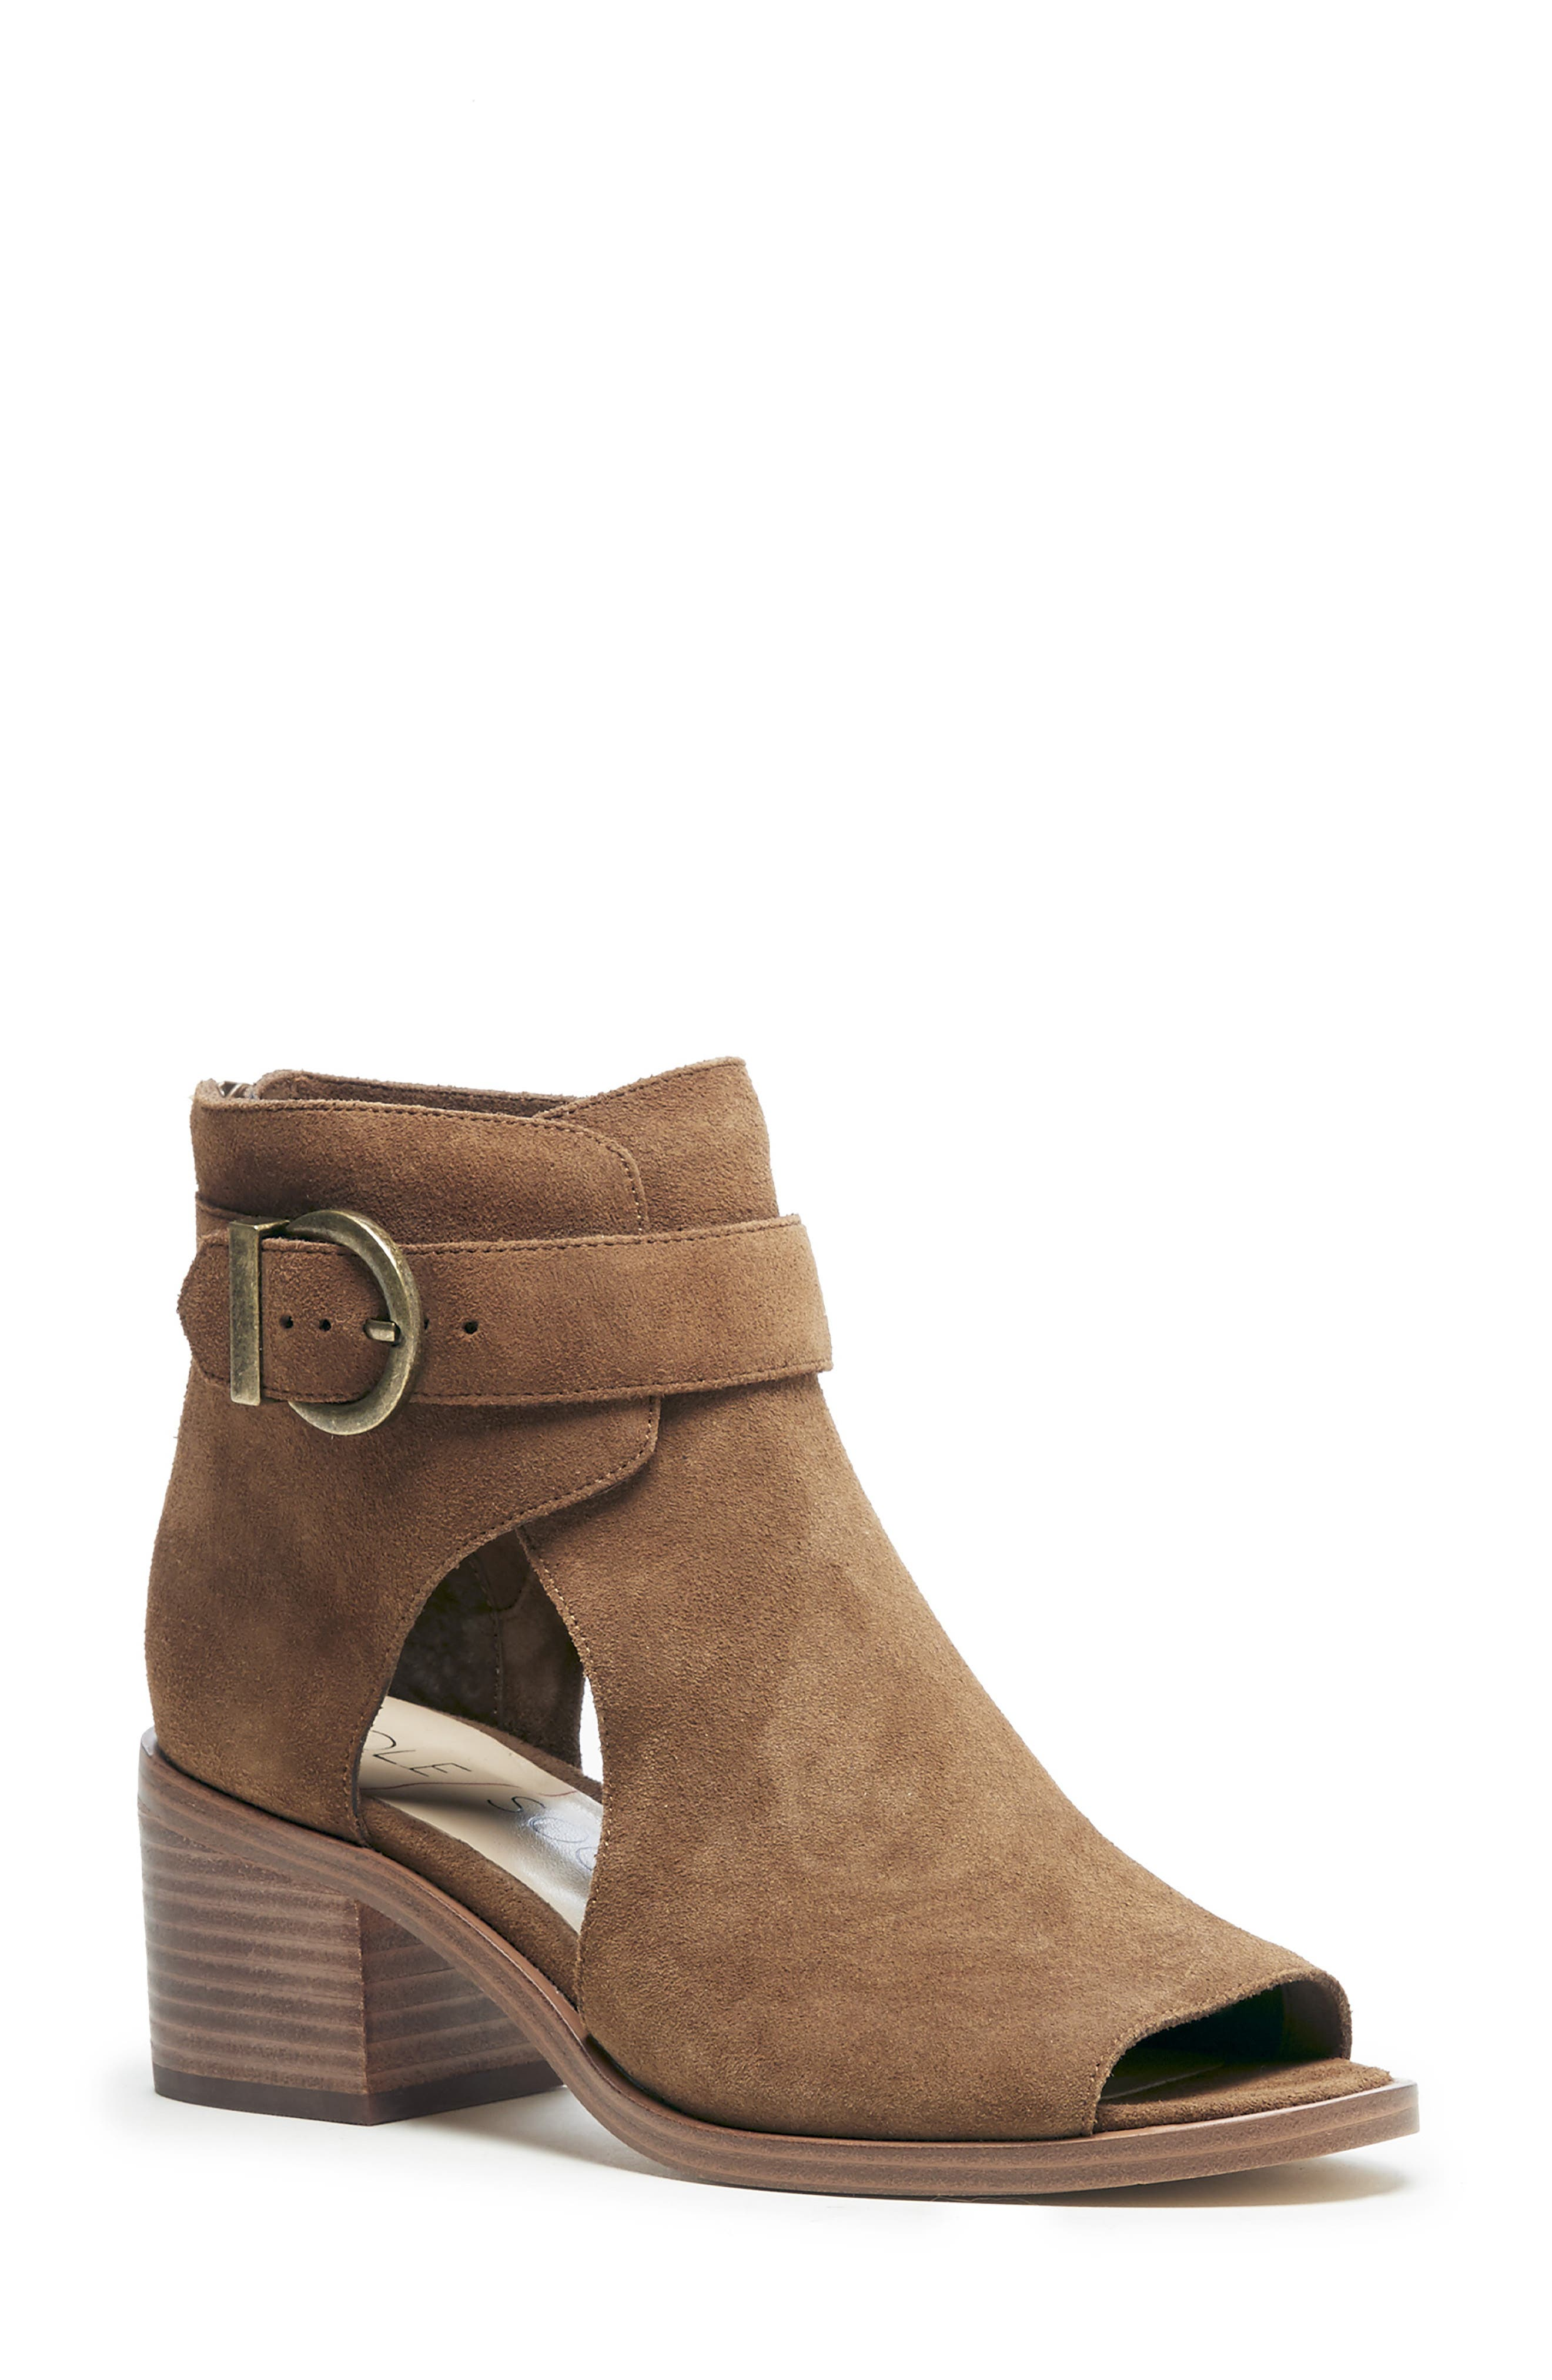 SOLE SOCIETY, Tracy Block Heel Sandal, Main thumbnail 1, color, TOBACCO SUEDE